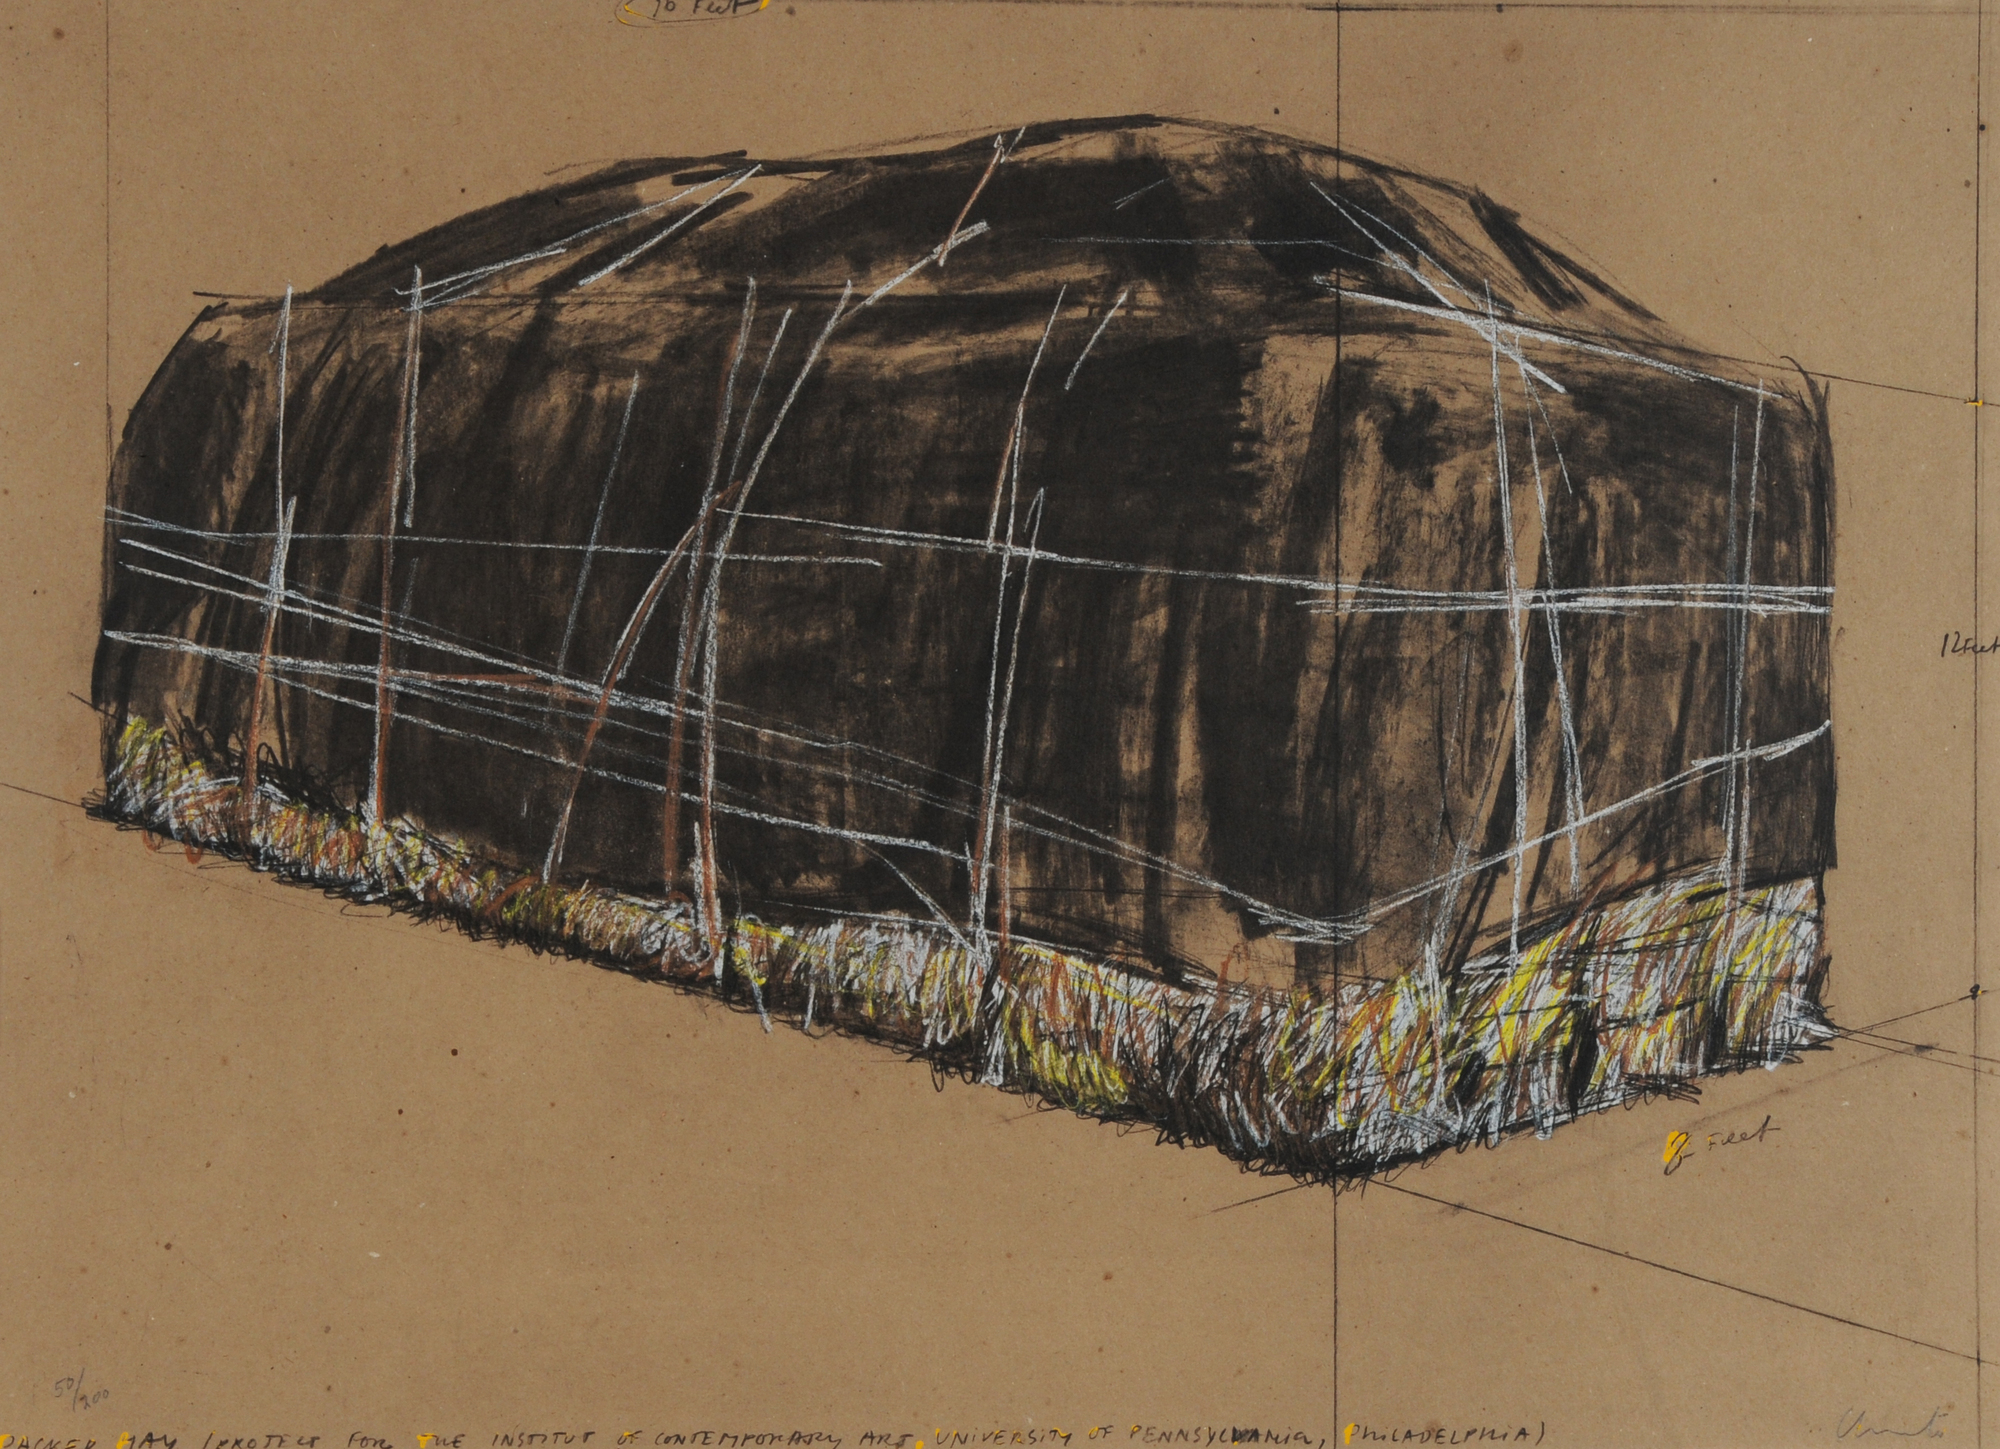 Christo, Packed Hay, Project for the Institute of Contemporary Art, Philadelphia